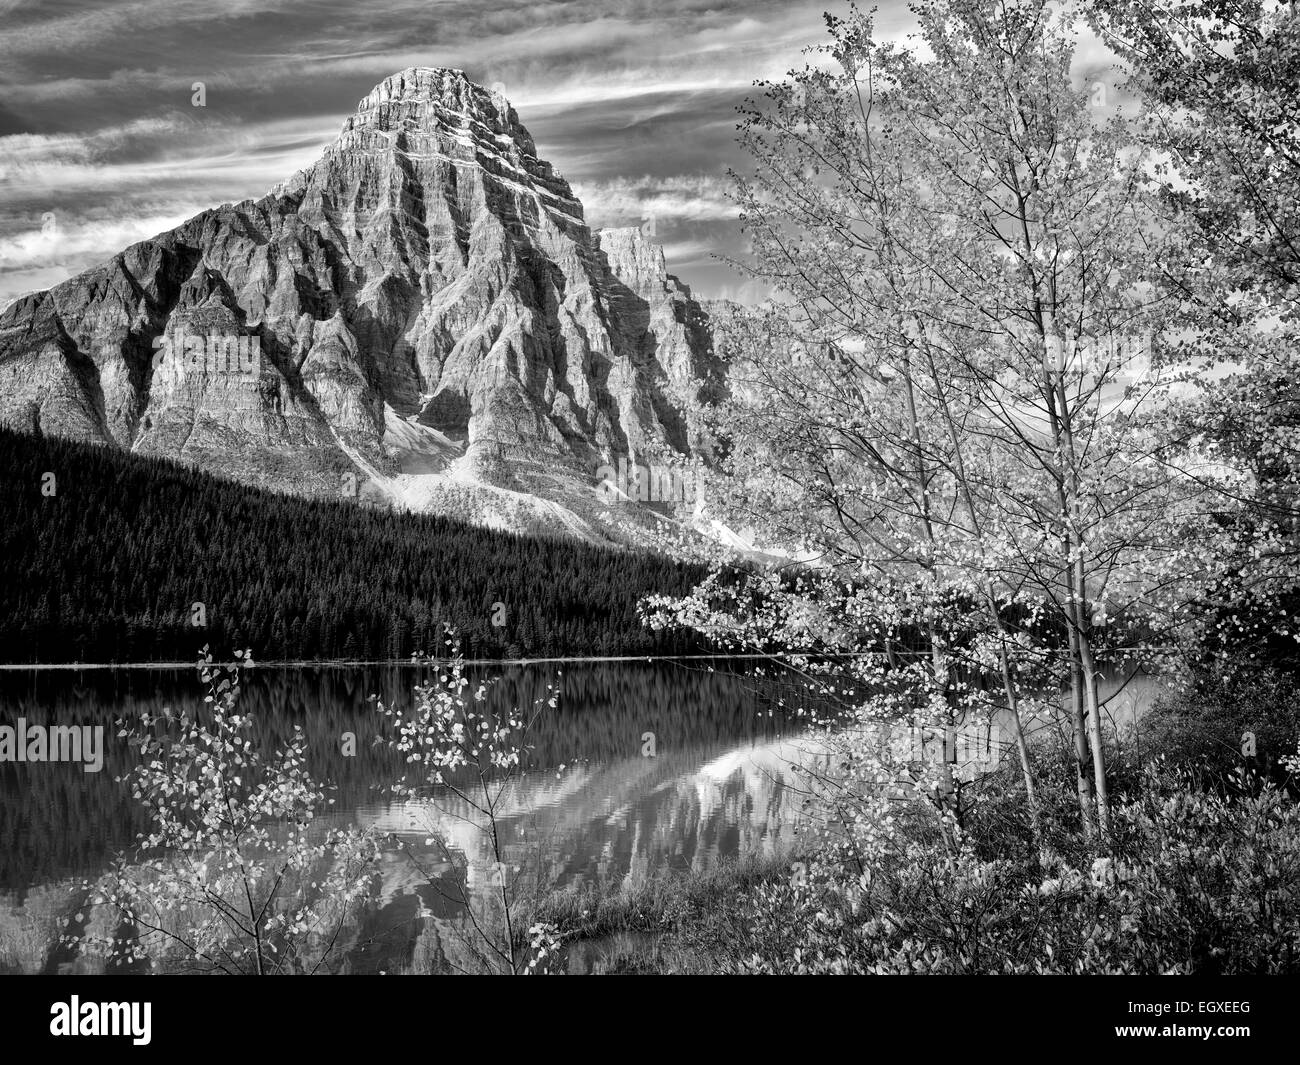 Waterfowl Lakes and Mt. Chephren with fall colored aspens.  Banff National Park. Alberta, Canada - Stock Image